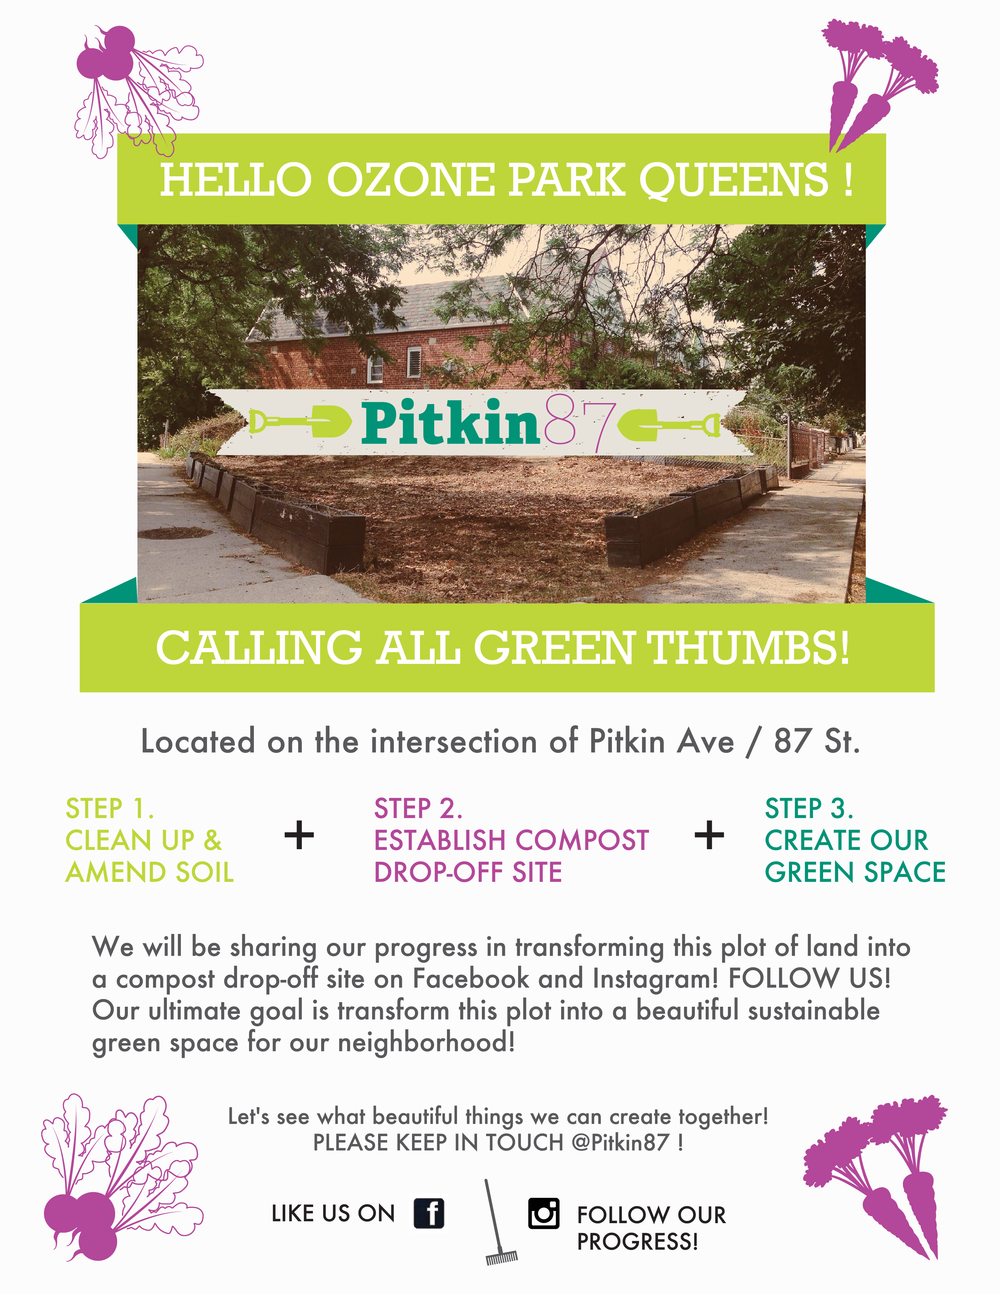 FACEBOOK_FLYER_PITKIN87_PAGE2.png